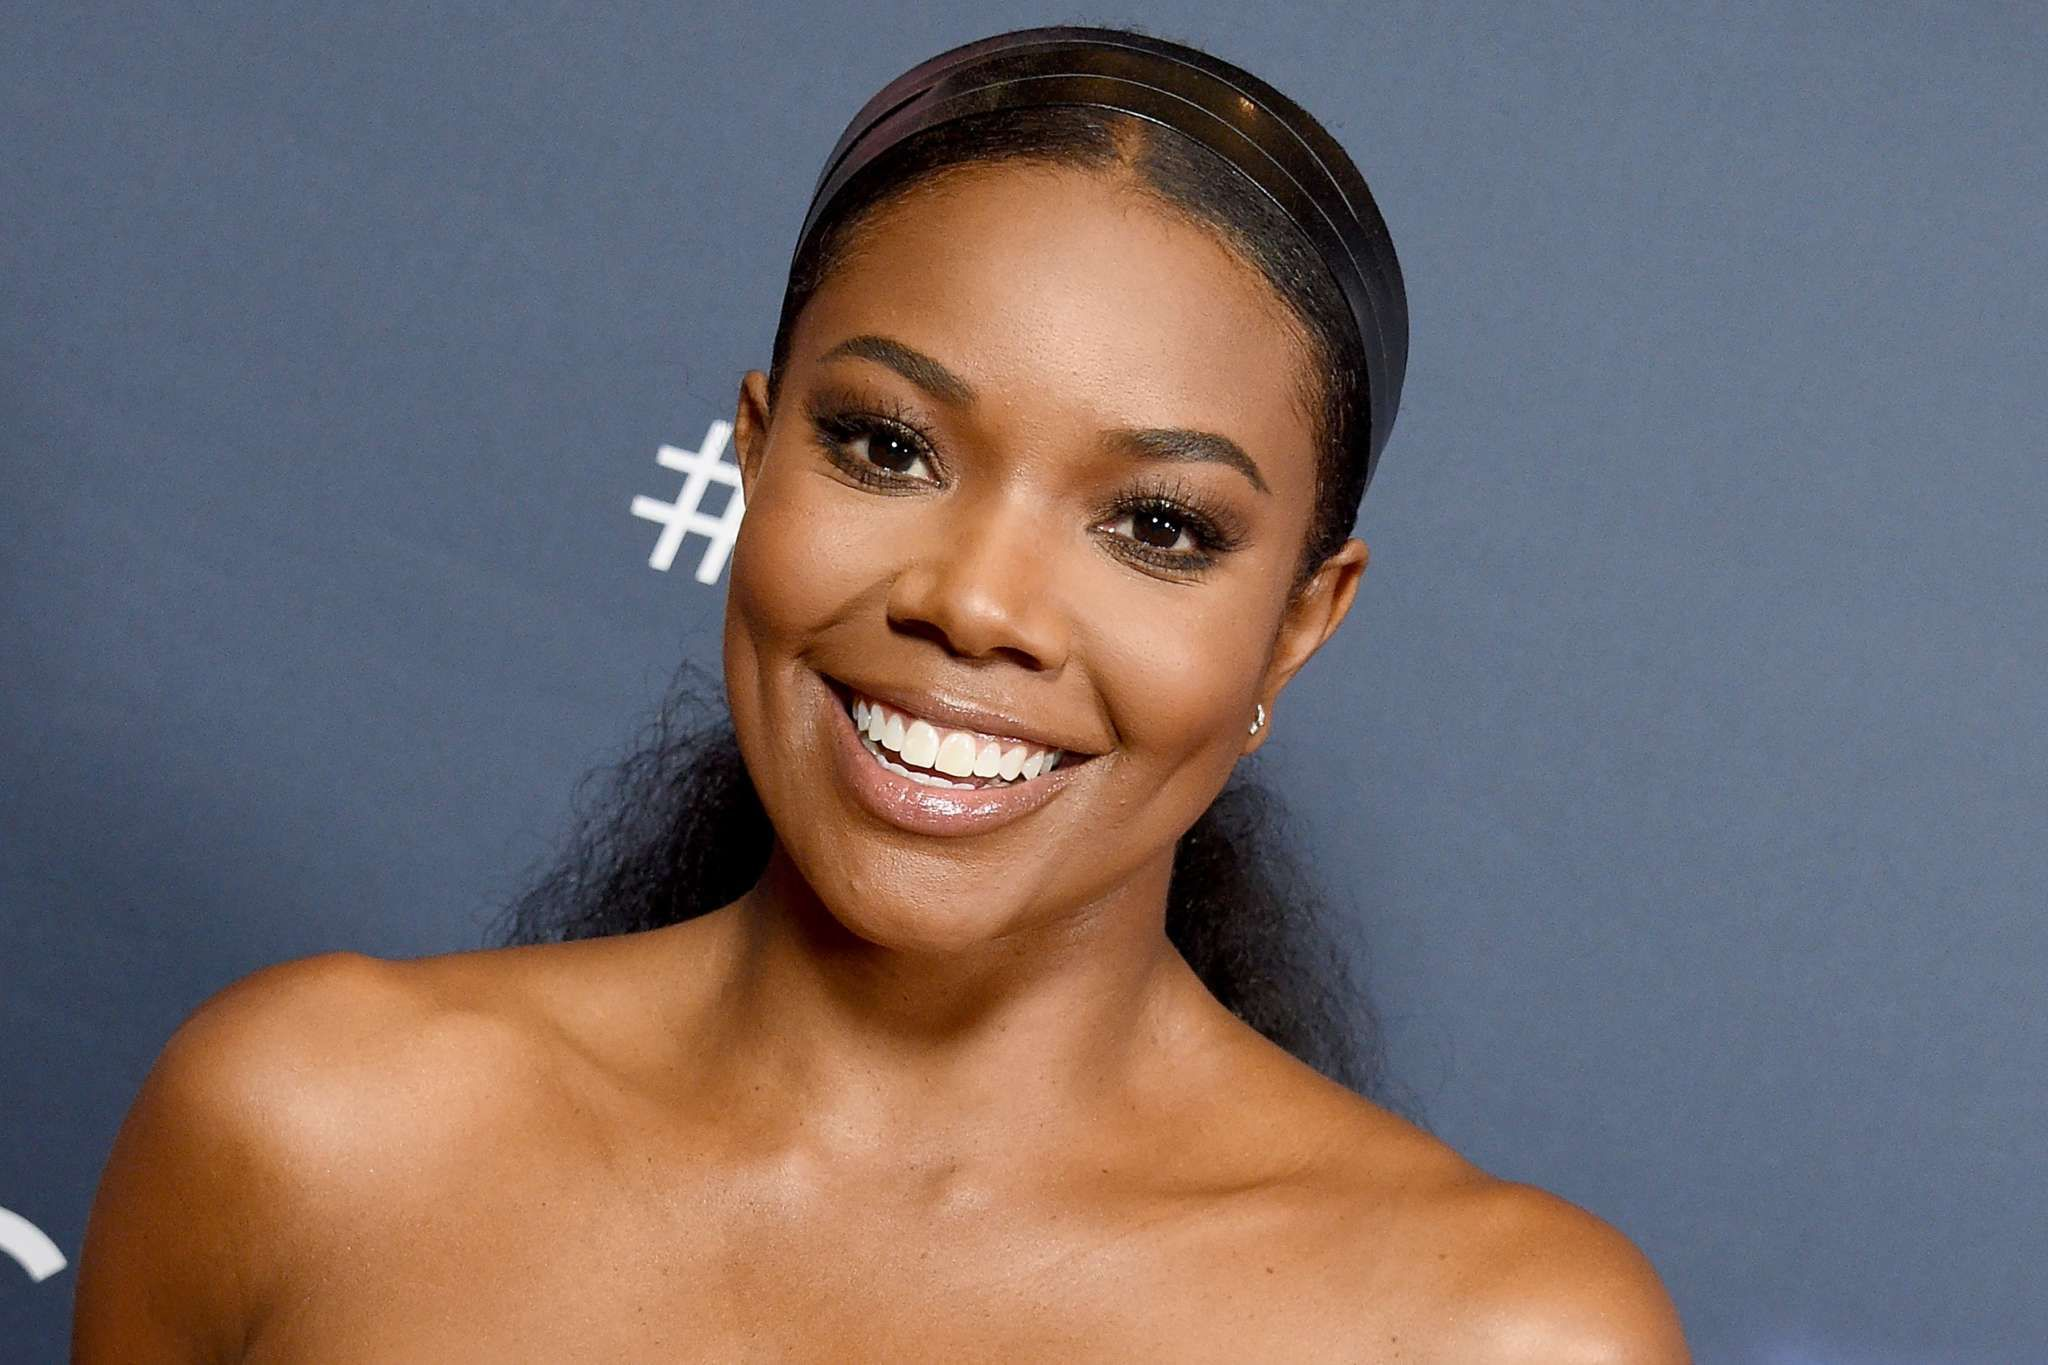 Gabrielle Union Offers Support To A Female Tap Dance Band #DwayneWade, #GabrielleUnion celebrityinsider.org #Entertainment #celebrityinsider #celebritynews #celebrities #celebrity